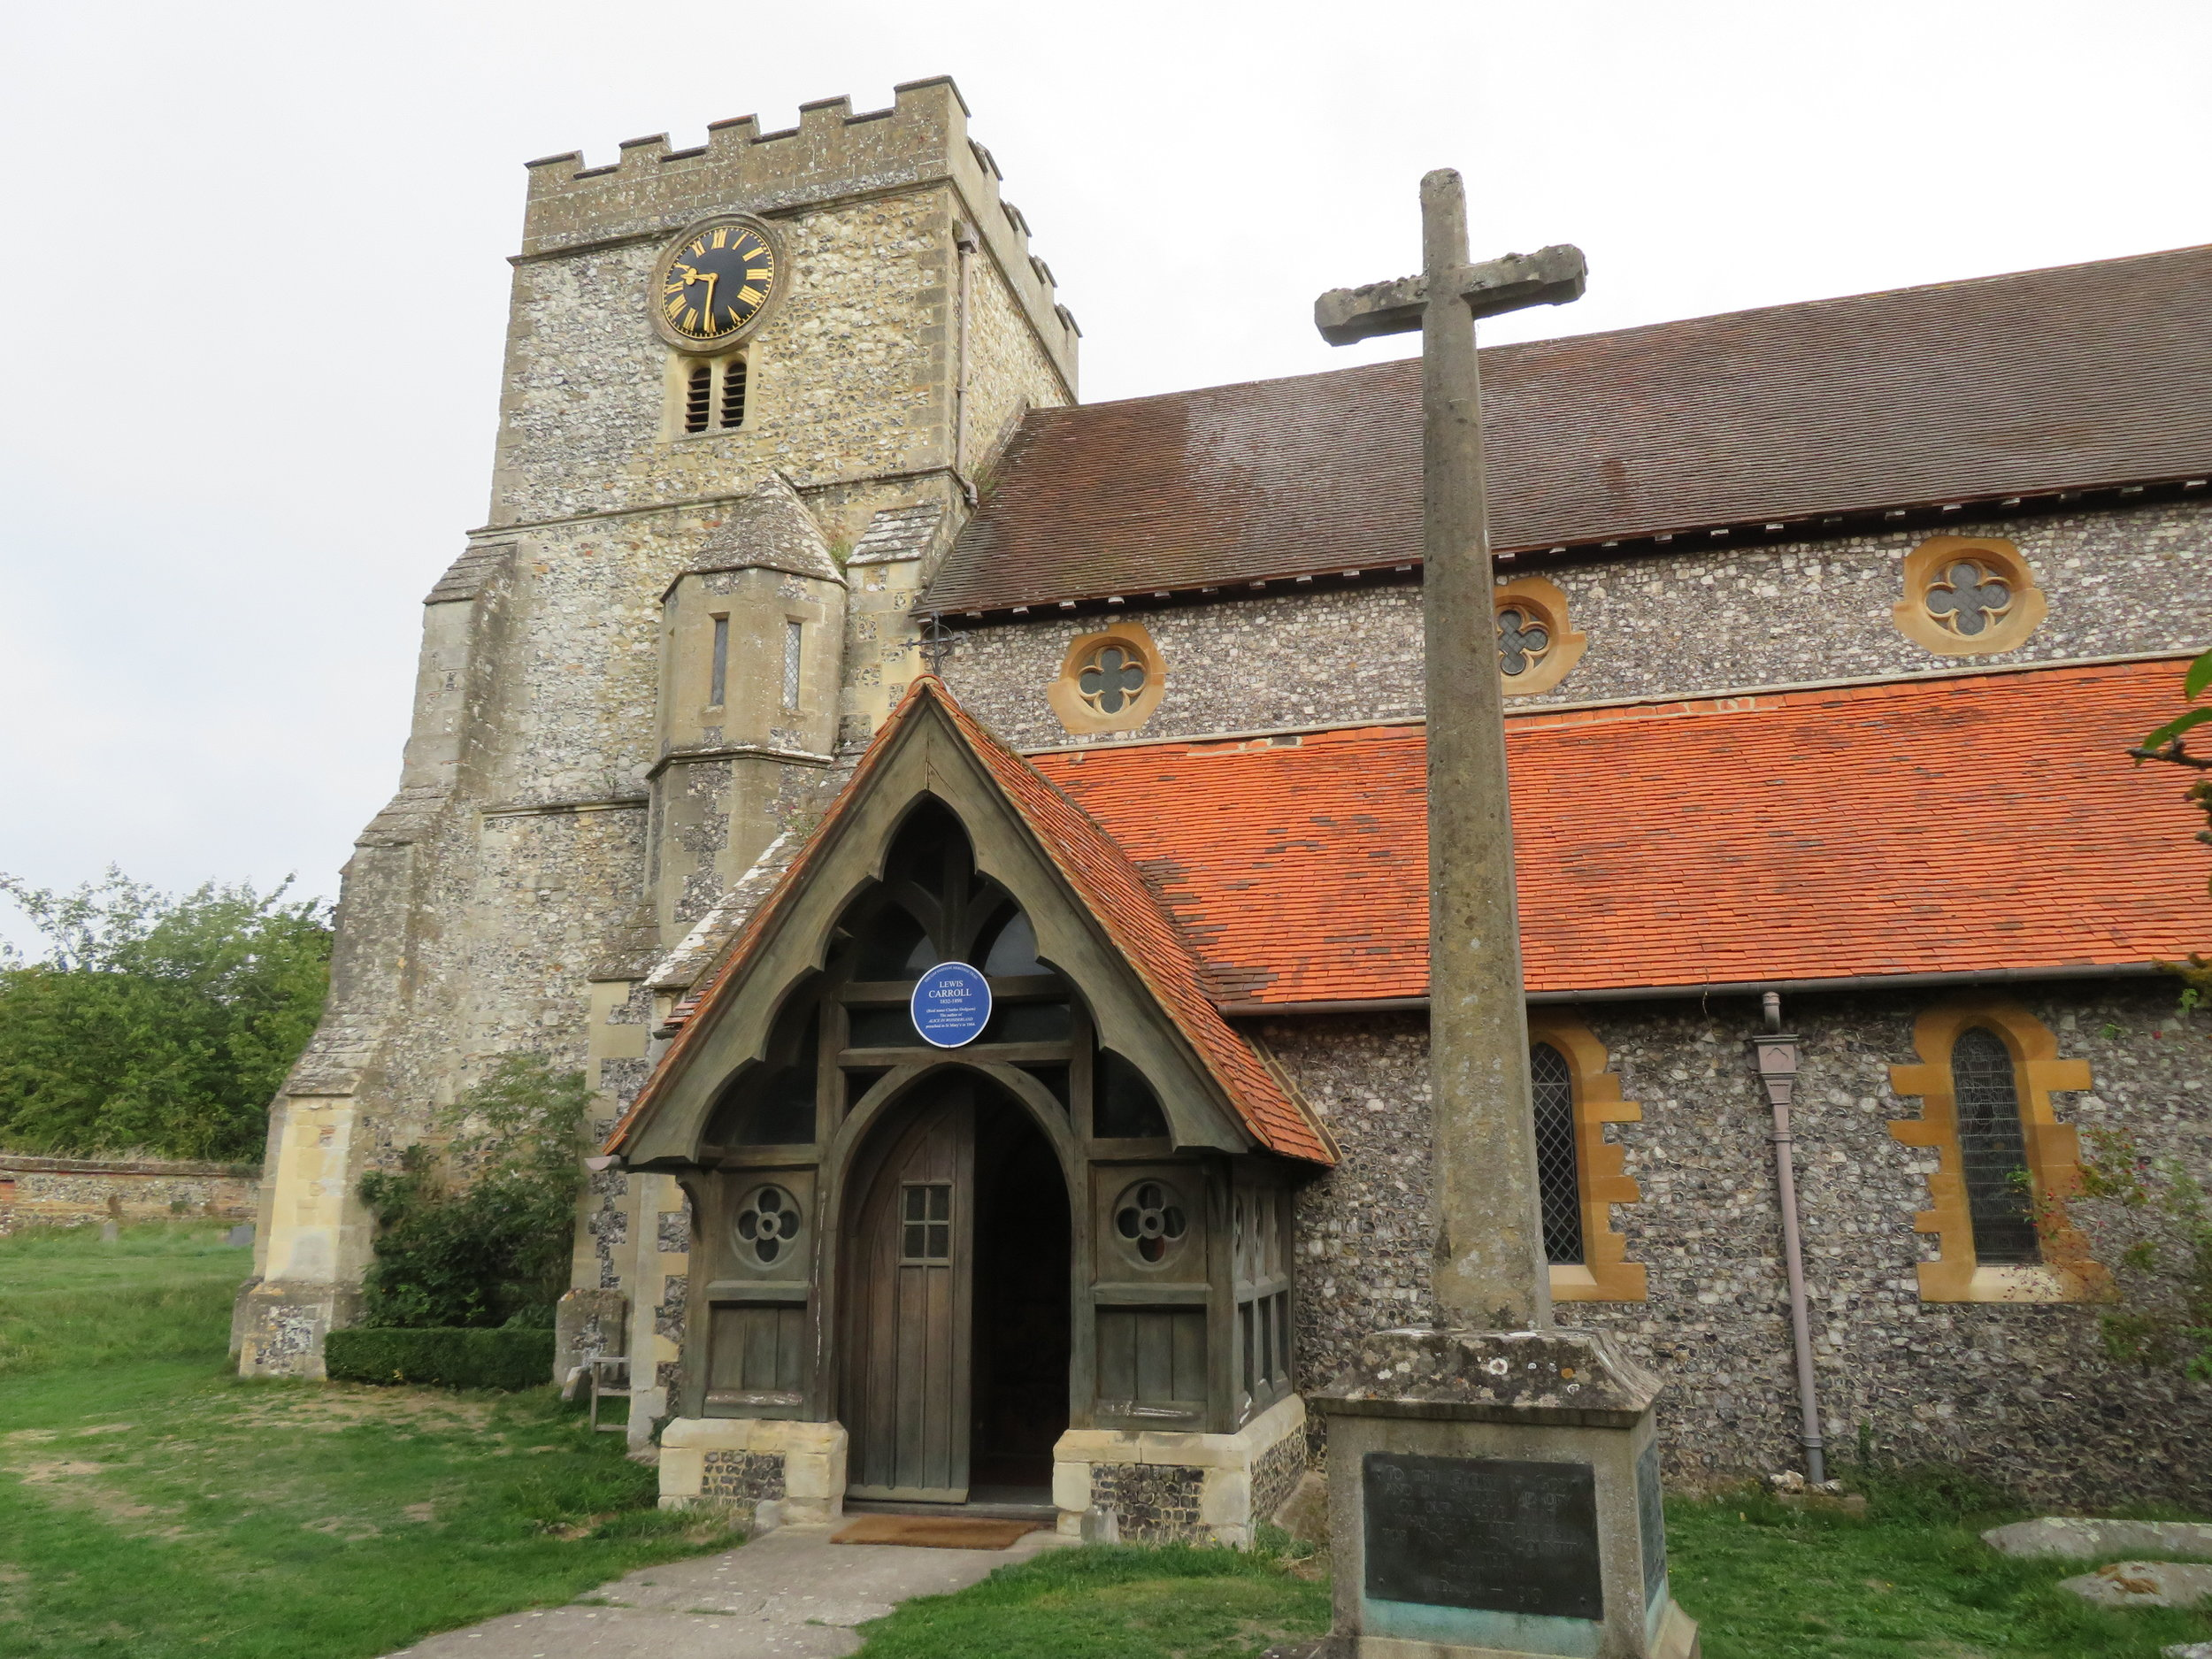 St. Mary's of Streatley